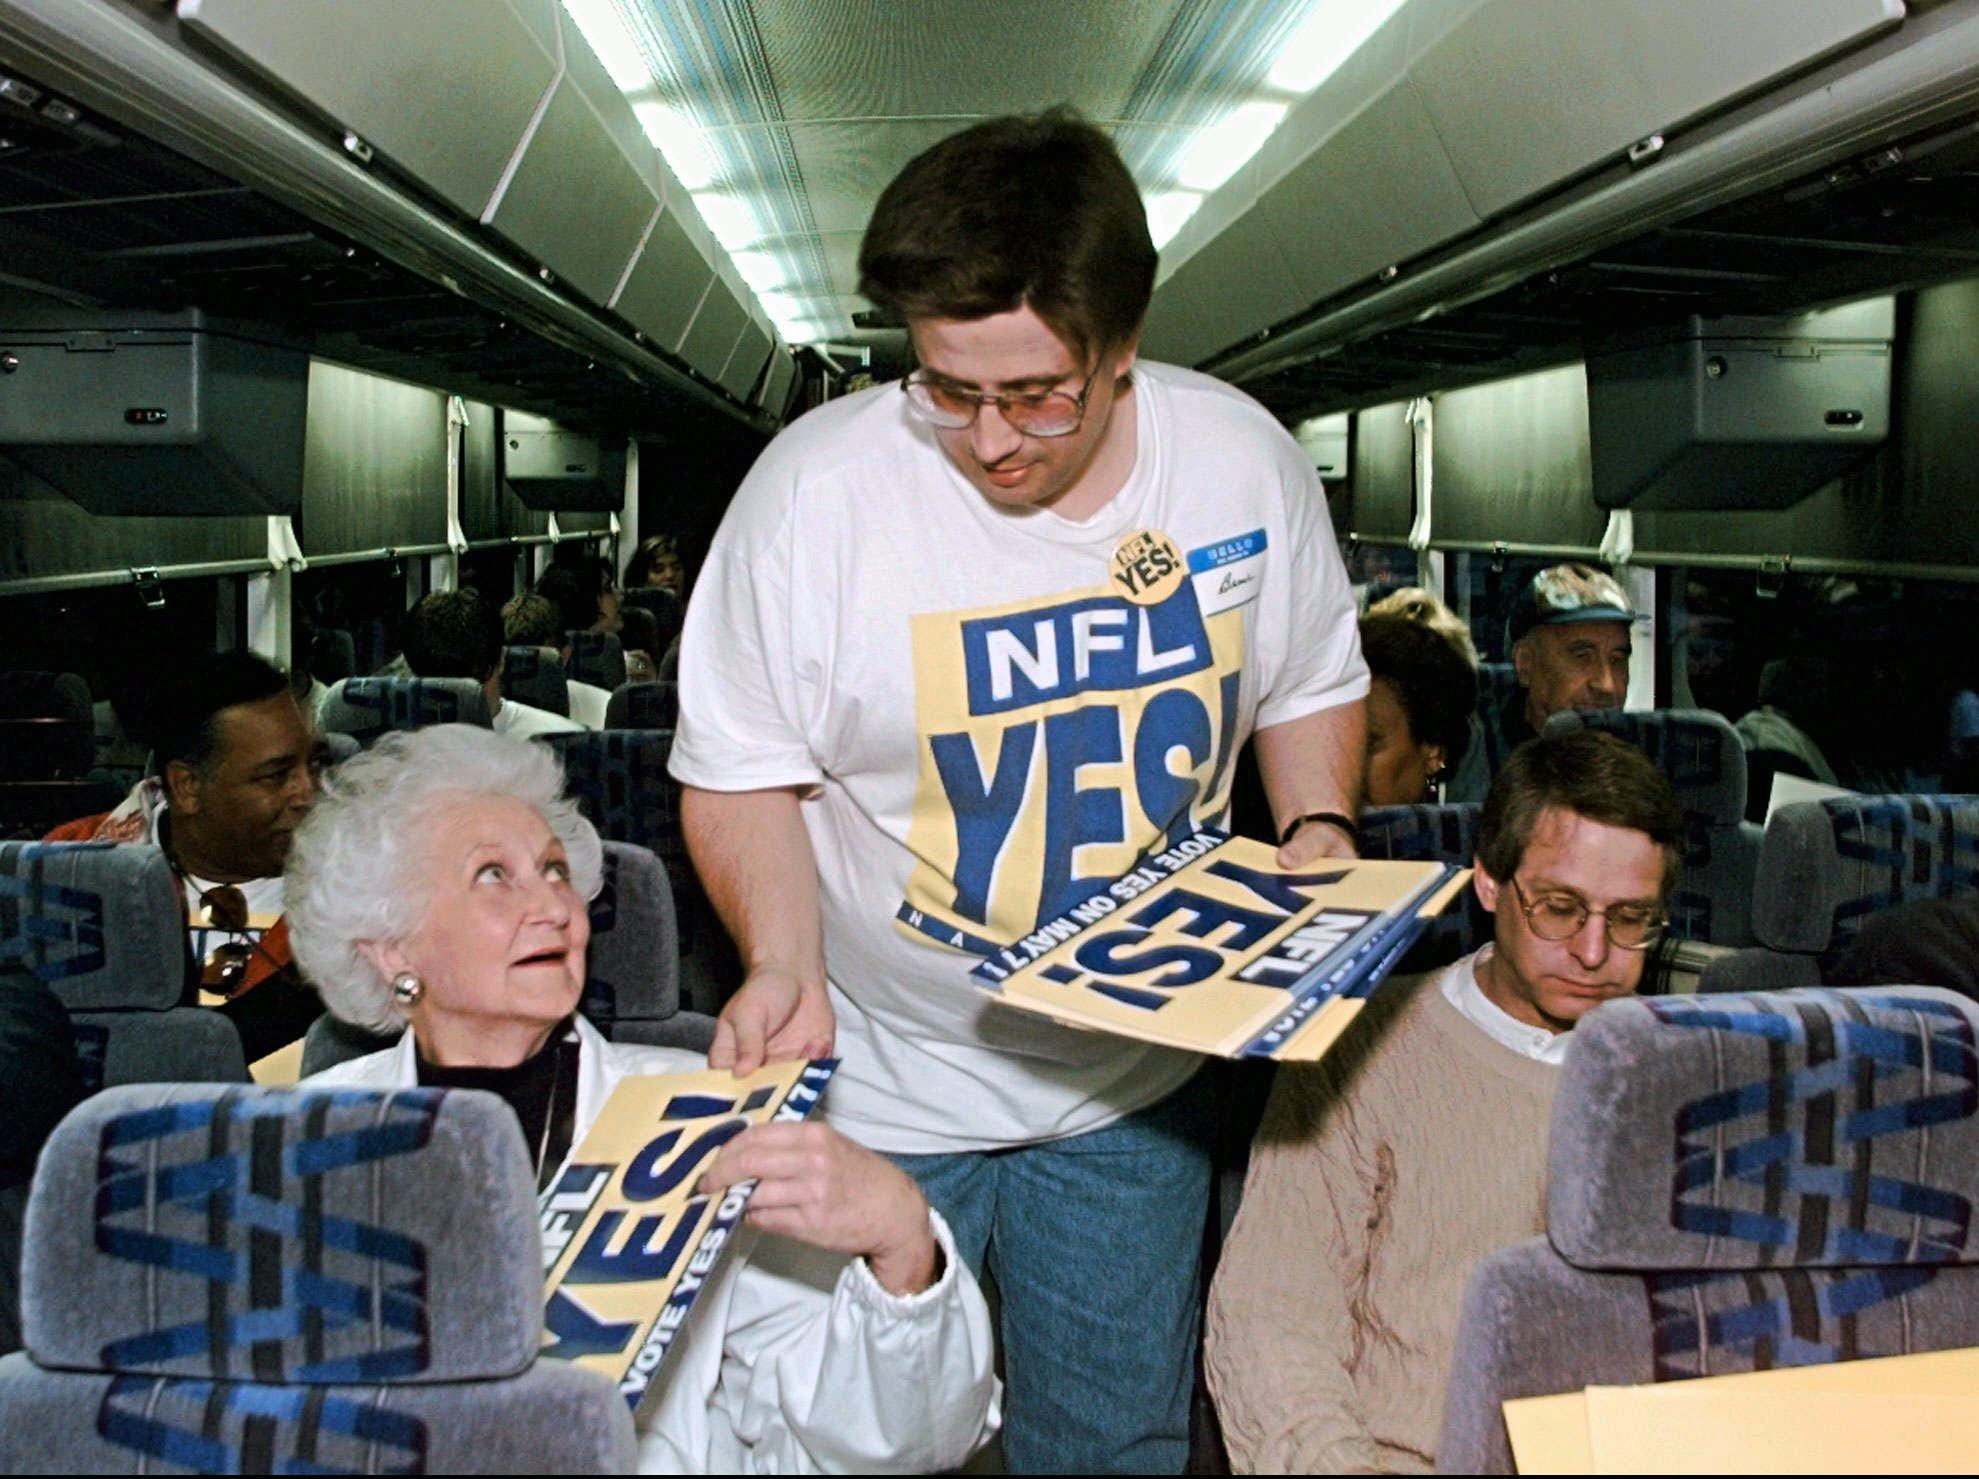 Bruce Odom, center, passes out signs to passengers on a bus preparing to leave Nashville for the NFL owners meeting in Atlanta April 30, 1996. The group is traveling to Atlanta to show support for the Houston Oilers' proposed move to Nashville. The owners are scheduled to vote on the move later in the day.